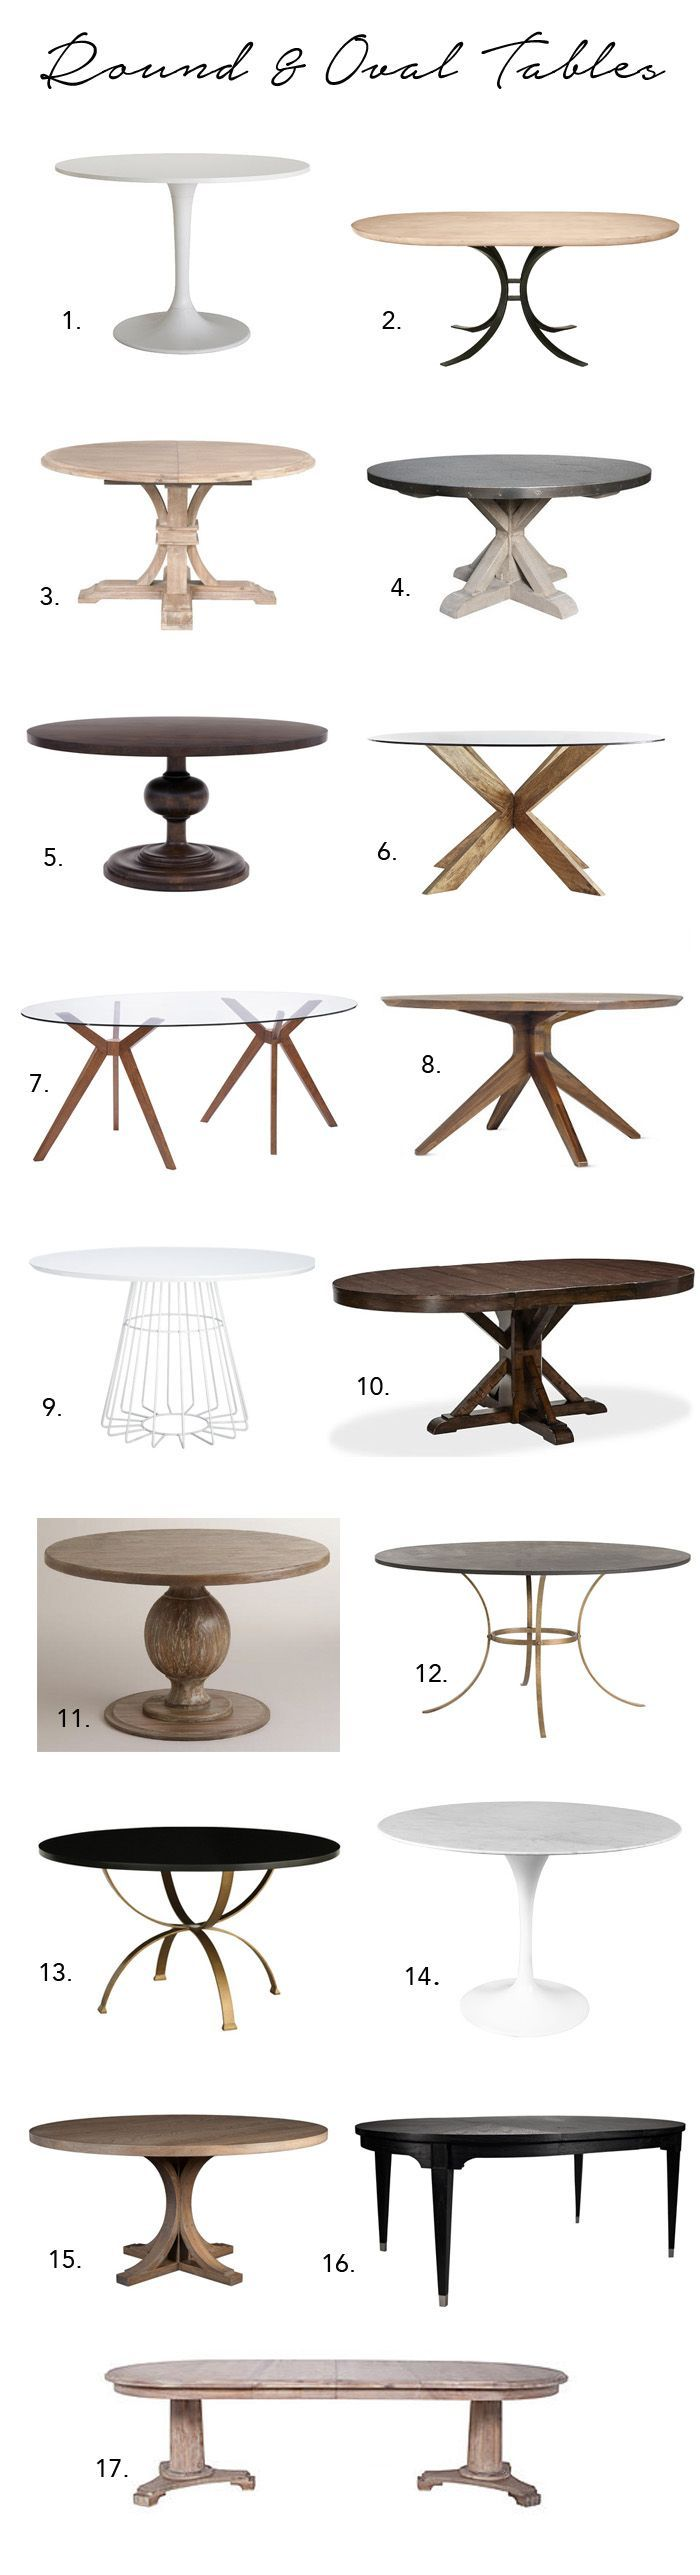 Best 20+ Round Dining Tables Ideas On Pinterest | Round Dining Table, Round  Dining Room Tables And Round Dinning Table Part 66